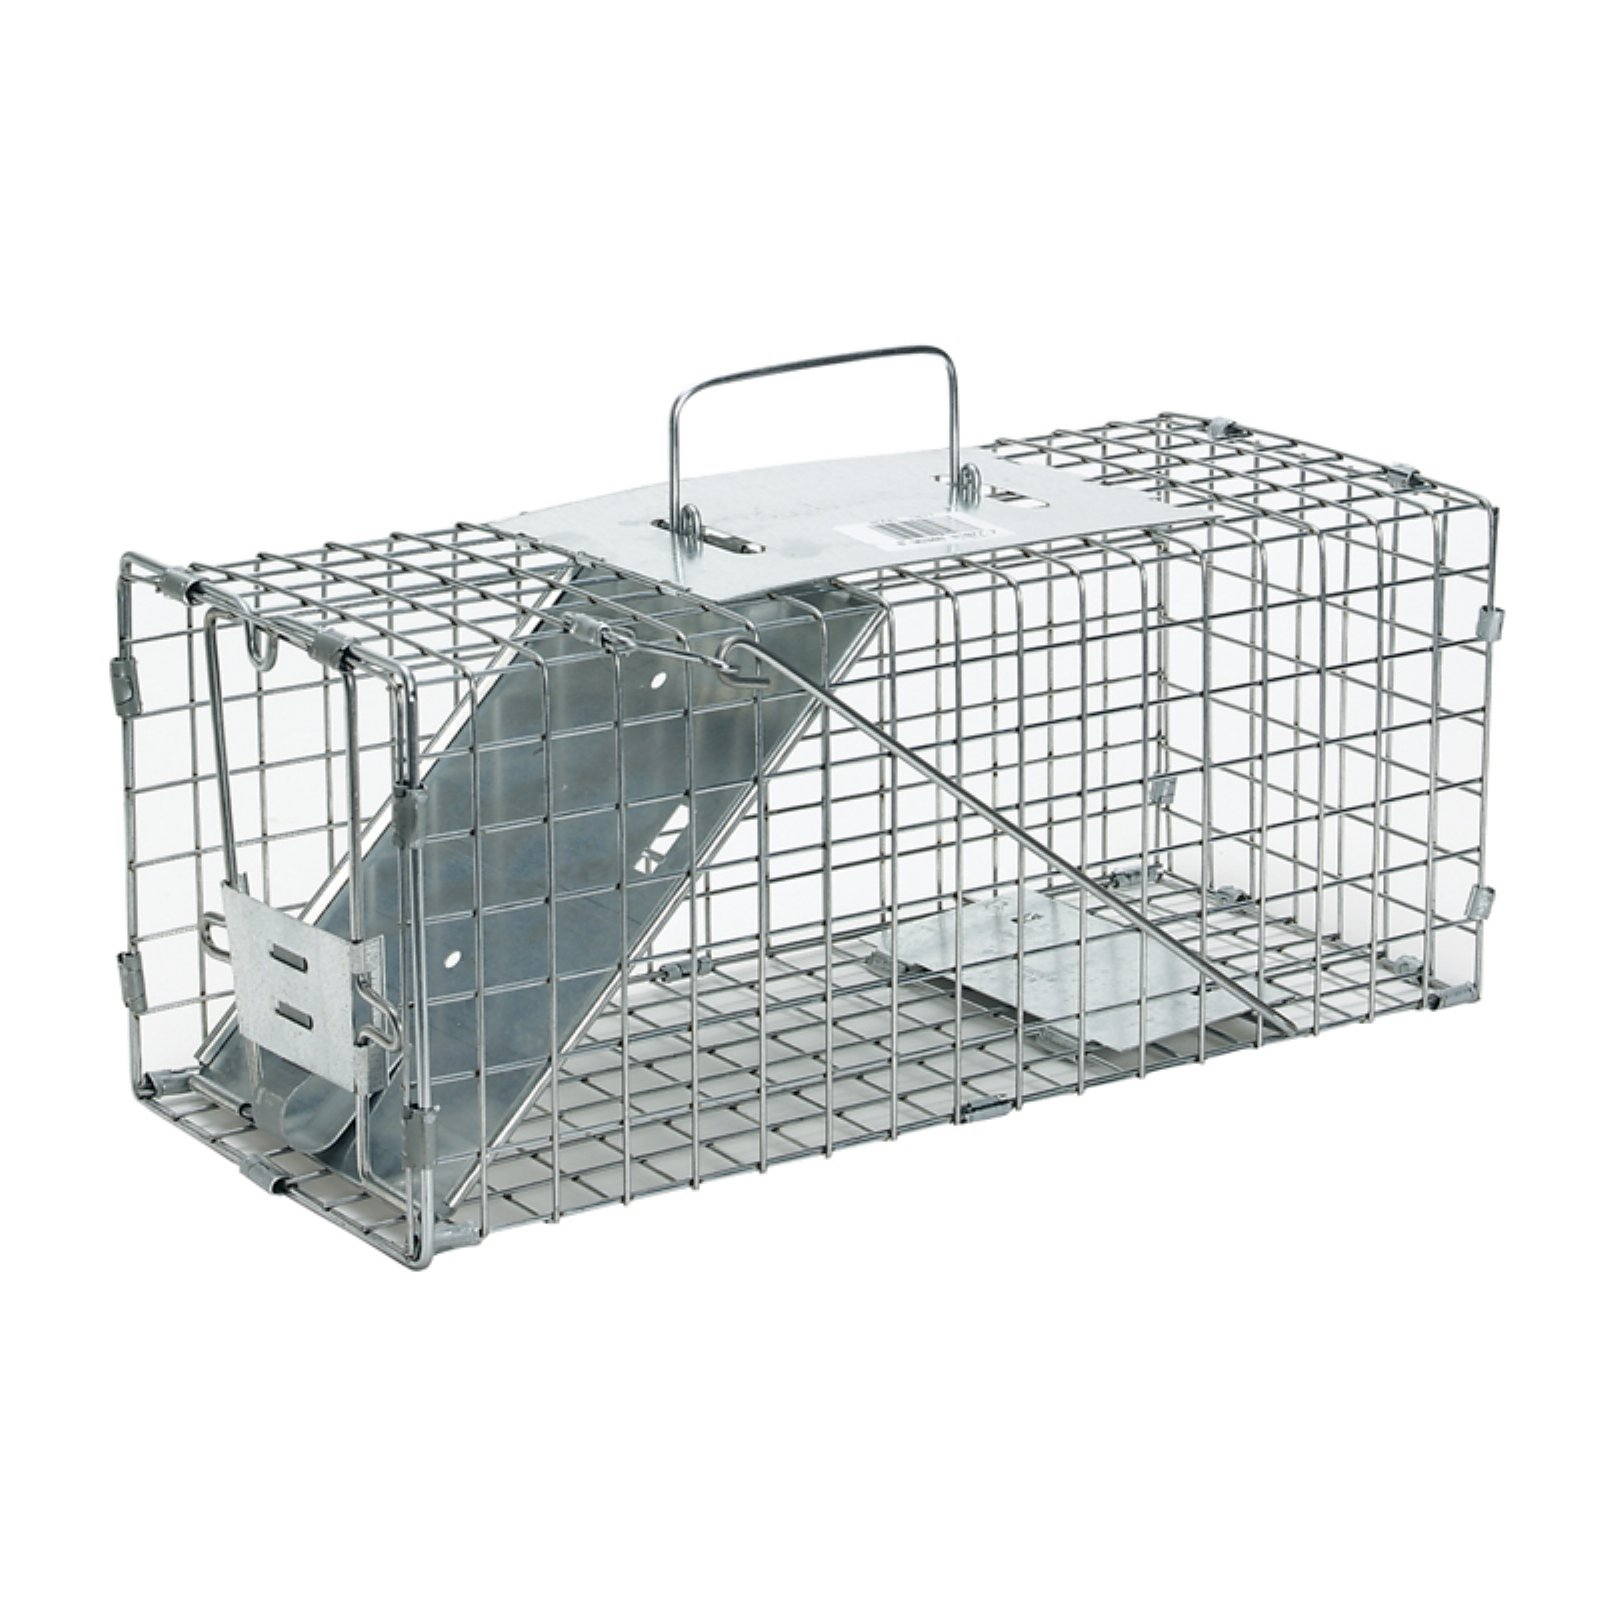 Havahart Small Professional Style 1-Door Animal Trap for Squirrel, Rabbit, Skunk and Mink